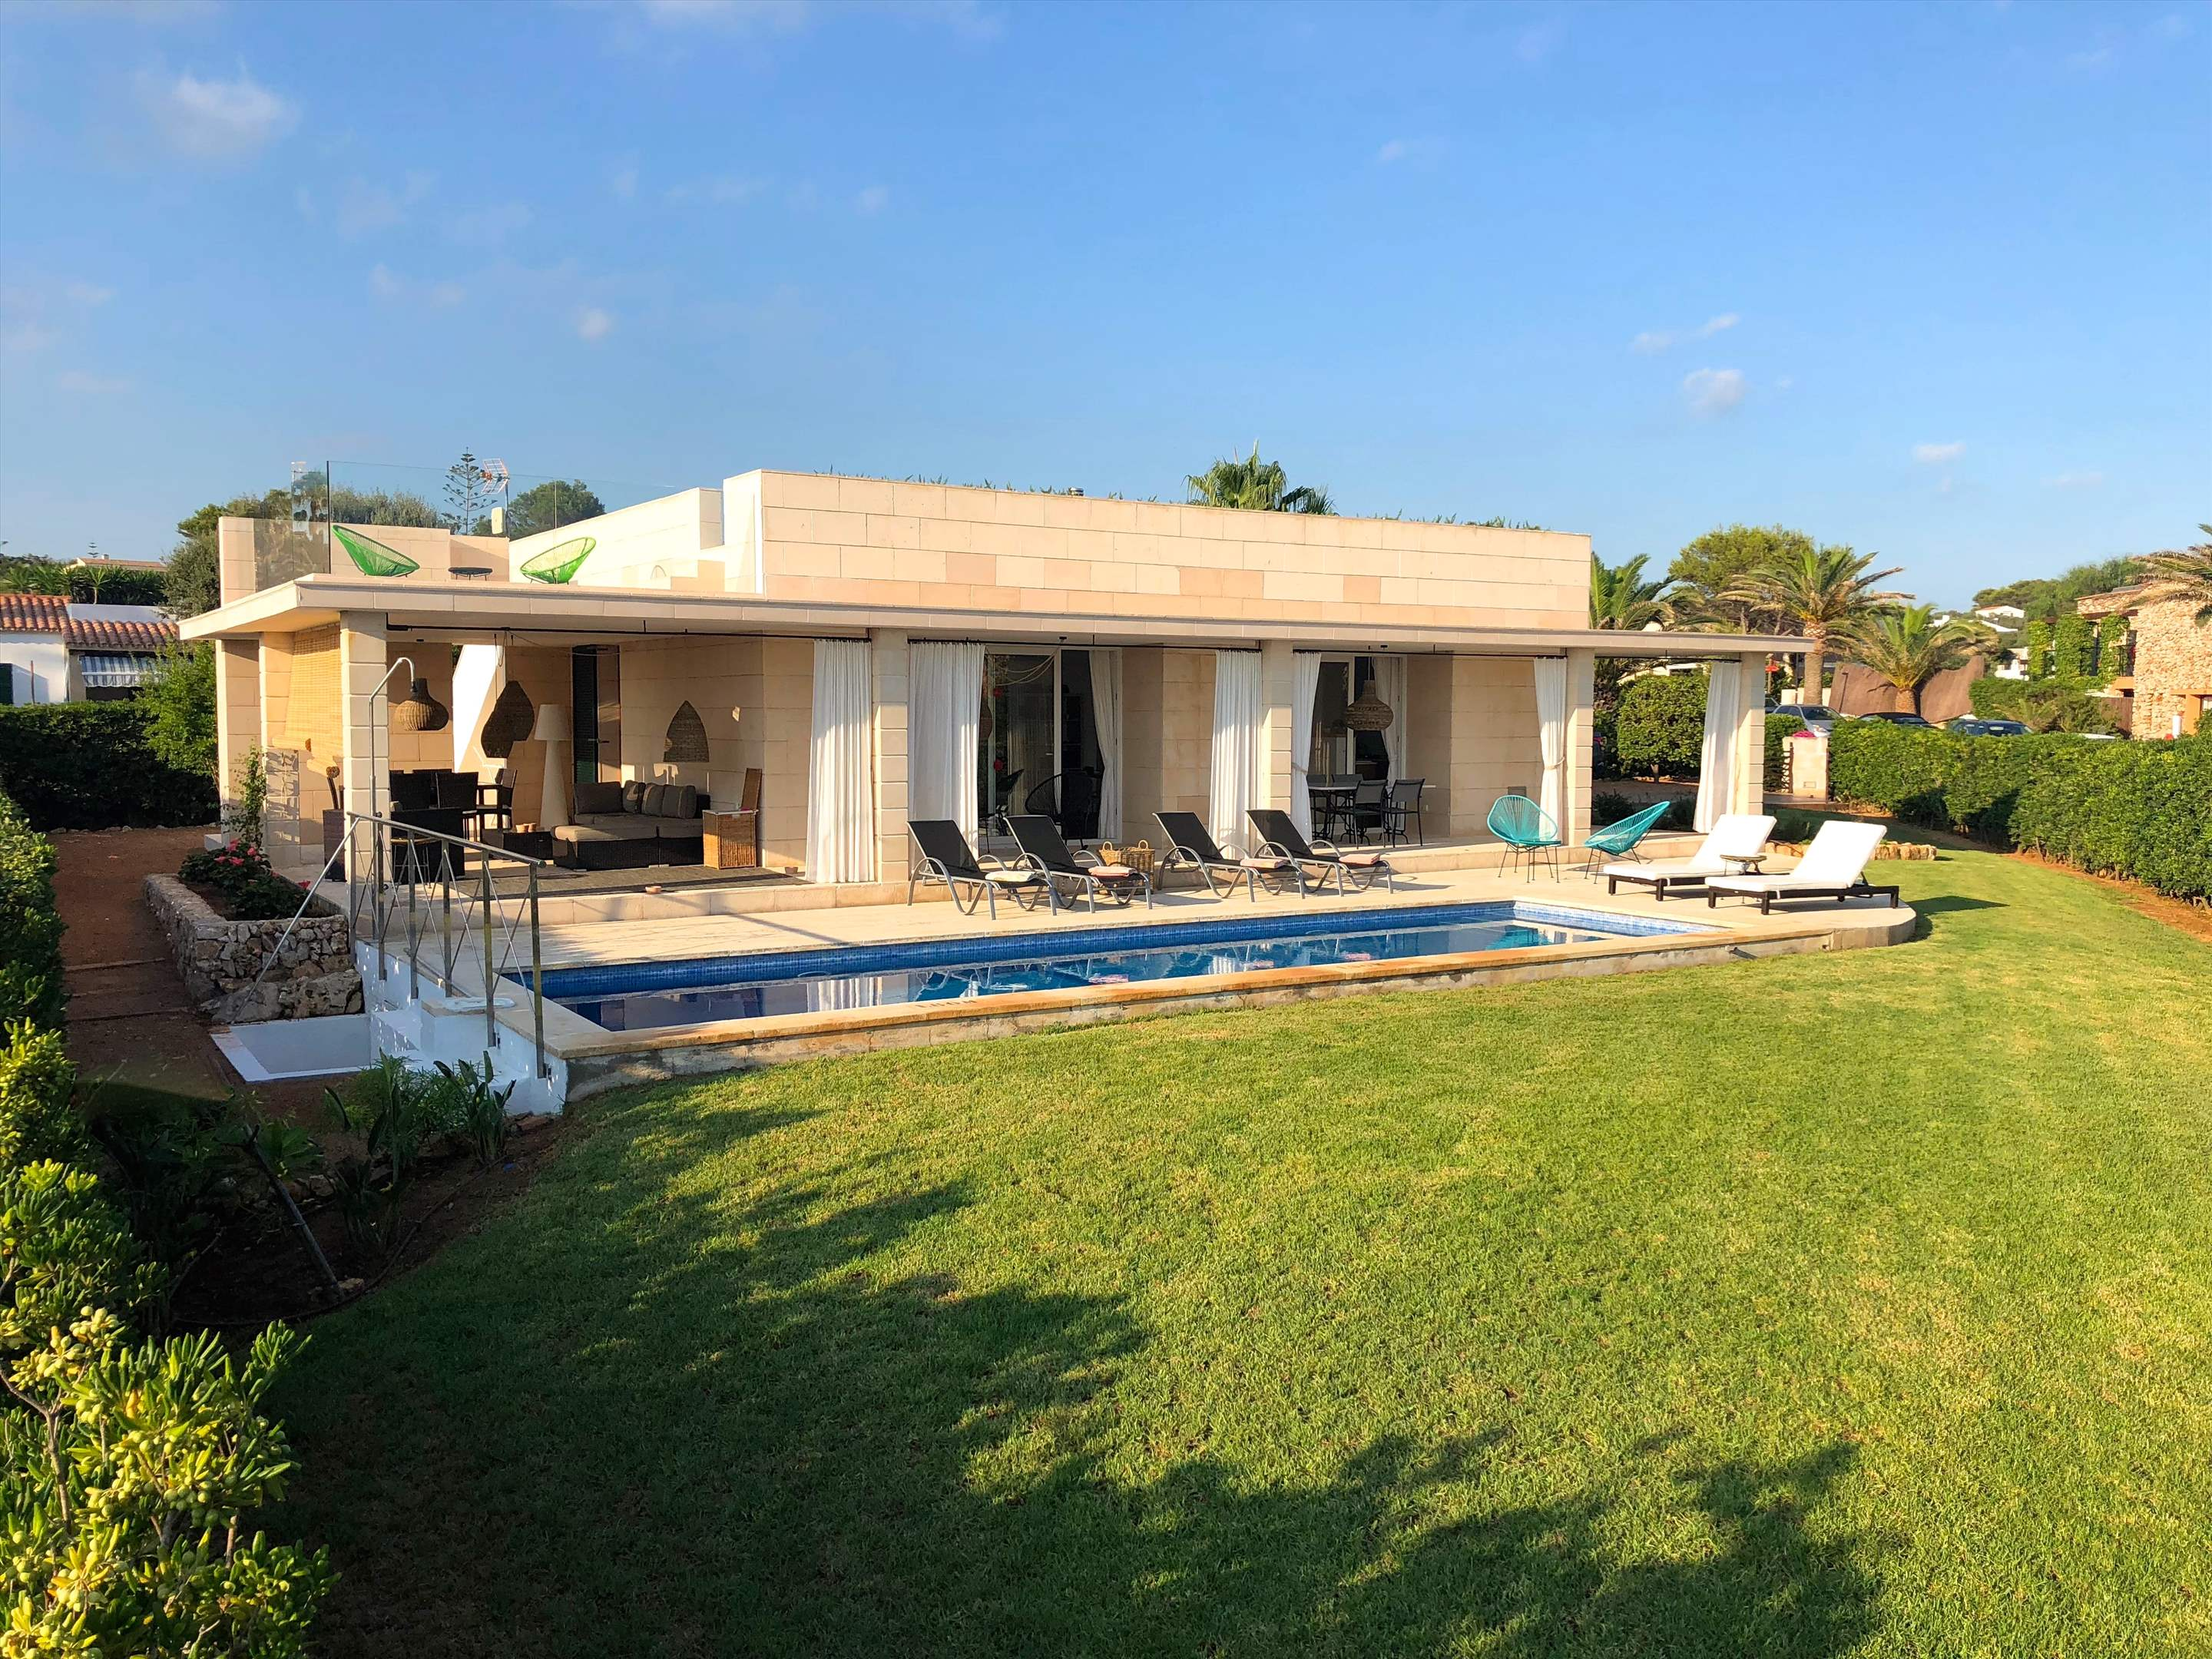 Villa Zapa, 3 bedroom villa in Mahon, San Luis & South East, Menorca